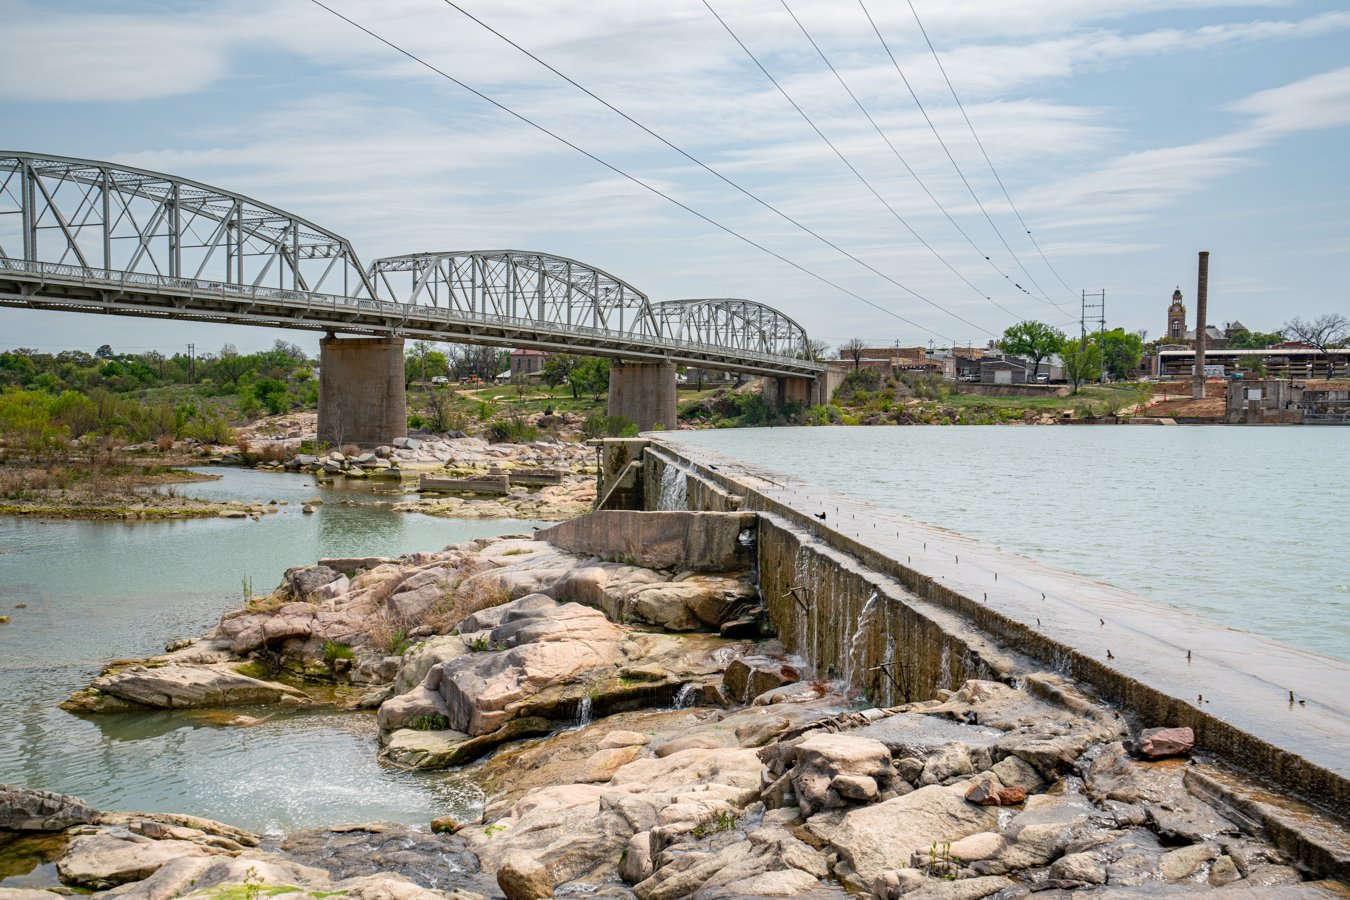 roys ink bridge spanning the llano river, one of the best things to do in llano texas